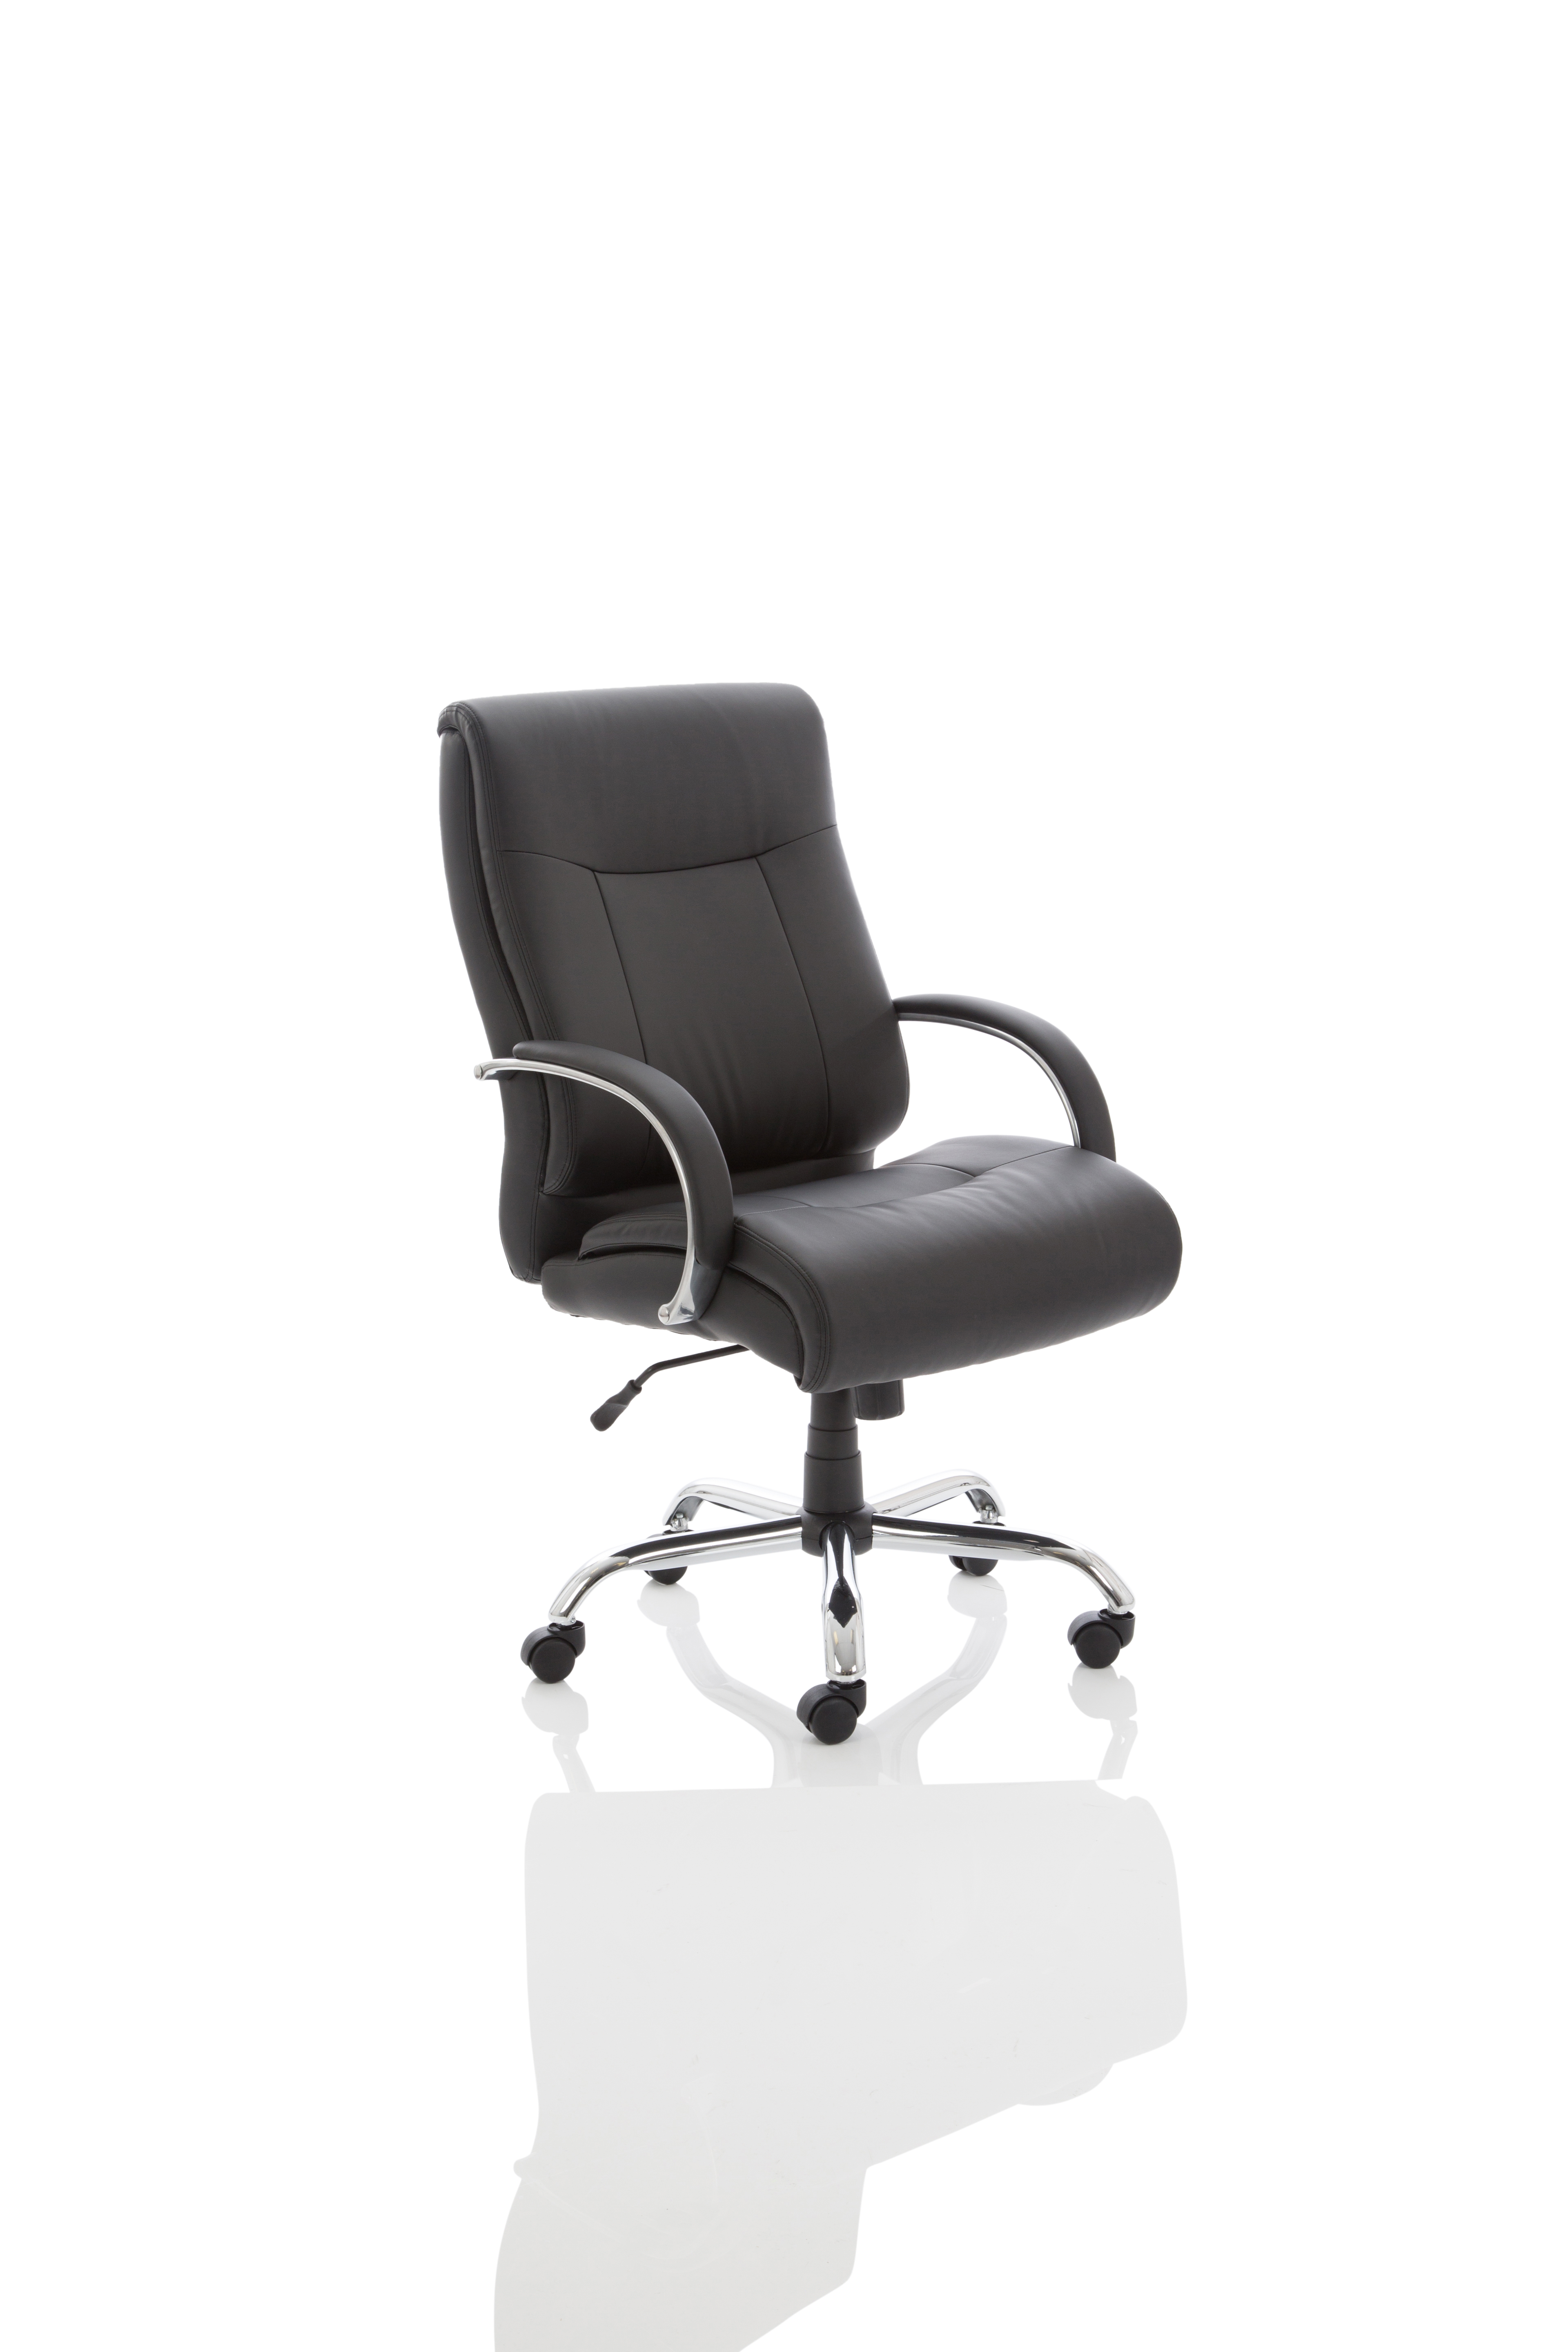 Executive Chairs Drayton HD Executive Leather Chair EX000191